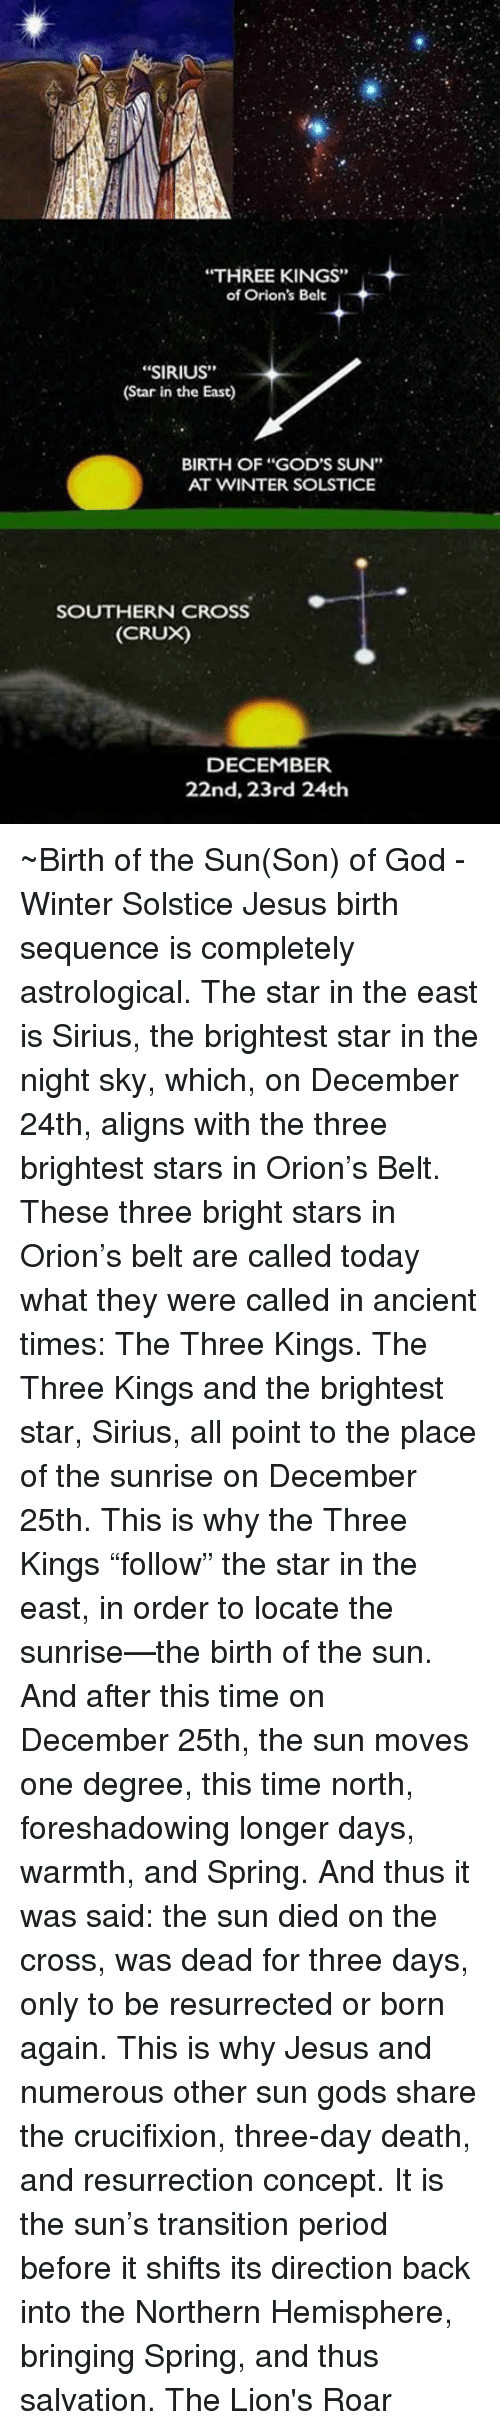 """hemisphere: """"THREE KINGS""""  of Orion's Belt  """"SIRIUS""""  (Star in the East)  BIRTH OF """"GOD'S SUN""""  AT WINTER SOLSTICE  SOUTHERN CROSS  (CRUX)  DECEMBER  22nd, 23rd 24th ~Birth of the Sun(Son) of God - Winter Solstice  Jesus birth sequence is completely astrological. The star in the east is Sirius, the brightest star in the night sky, which, on December 24th, aligns with the three brightest stars in Orion's Belt. These three bright stars in Orion's belt are called today what they were called in ancient times: The Three Kings. The Three Kings and the brightest star, Sirius, all point to the place of the sunrise on December 25th. This is why the Three Kings """"follow"""" the star in the east, in order to locate the sunrise—the birth of the sun. And after this time on December 25th, the sun moves one degree, this time north, foreshadowing longer days, warmth, and Spring. And thus it was said: the sun died on the cross, was dead for three days, only to be resurrected or born again. This is why Jesus and numerous other sun gods share the crucifixion, three-day death, and resurrection concept. It is the sun's transition period before it shifts its direction back into the Northern Hemisphere, bringing Spring, and thus salvation.  The Lion's Roar"""